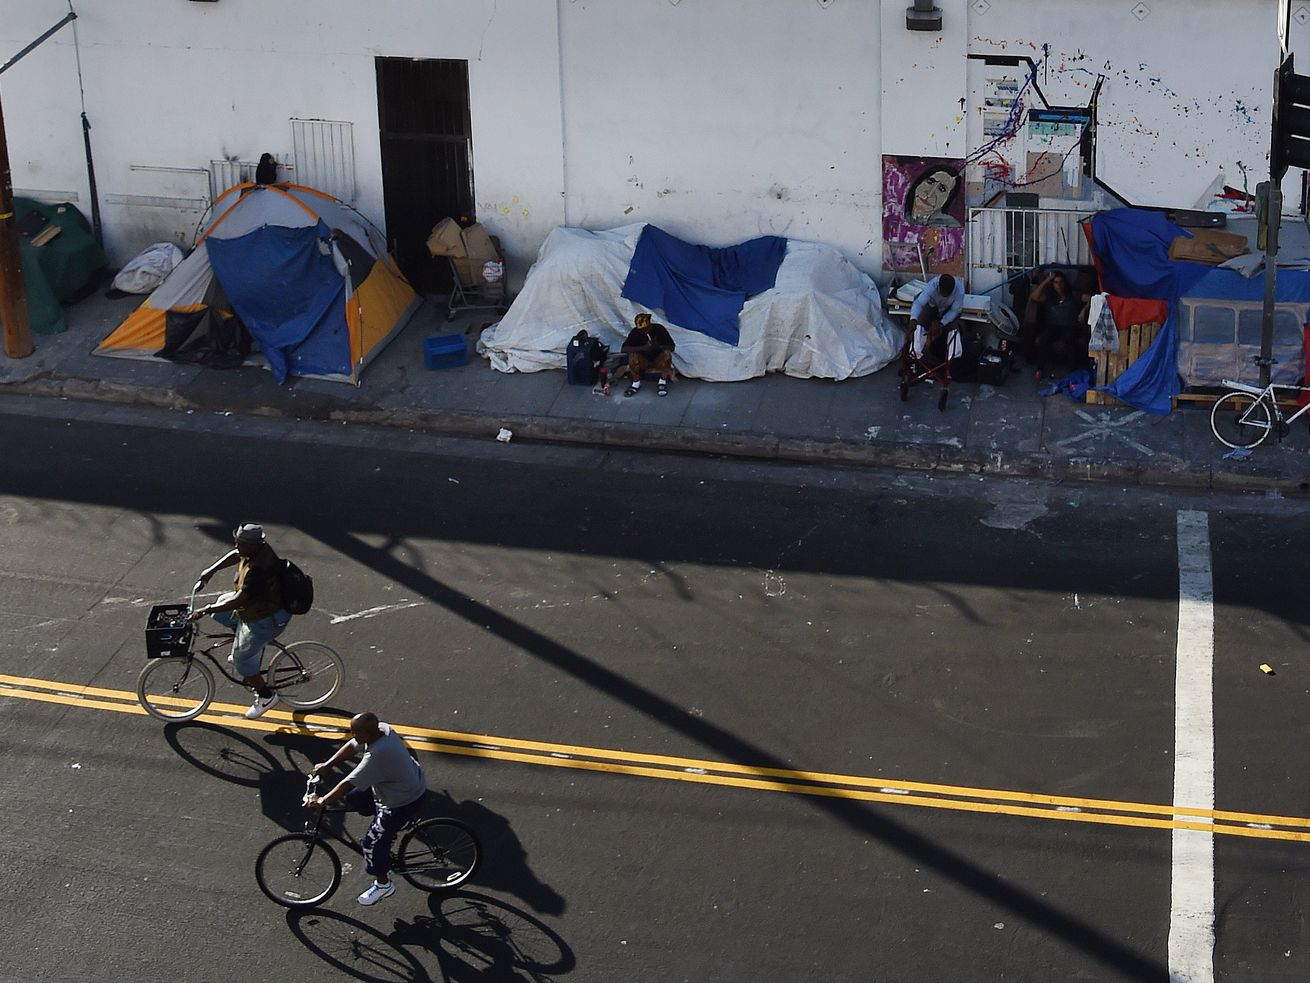 People who ride bikes through Skid Row now have to leave the neighborhood to find a bike lane.